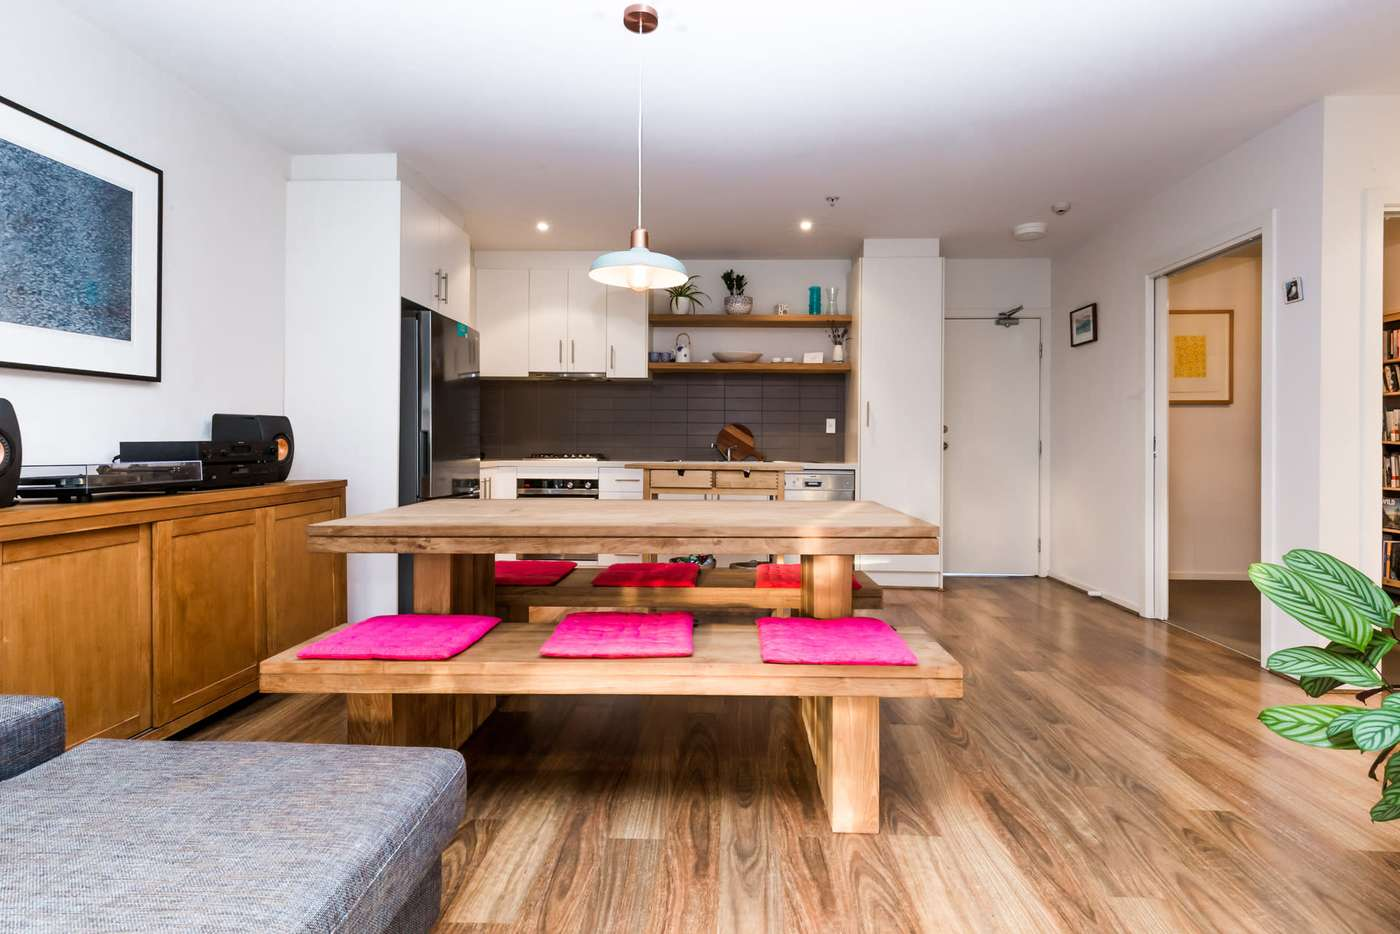 Fifth view of Homely apartment listing, 14/23 Pickett Street, Footscray VIC 3011